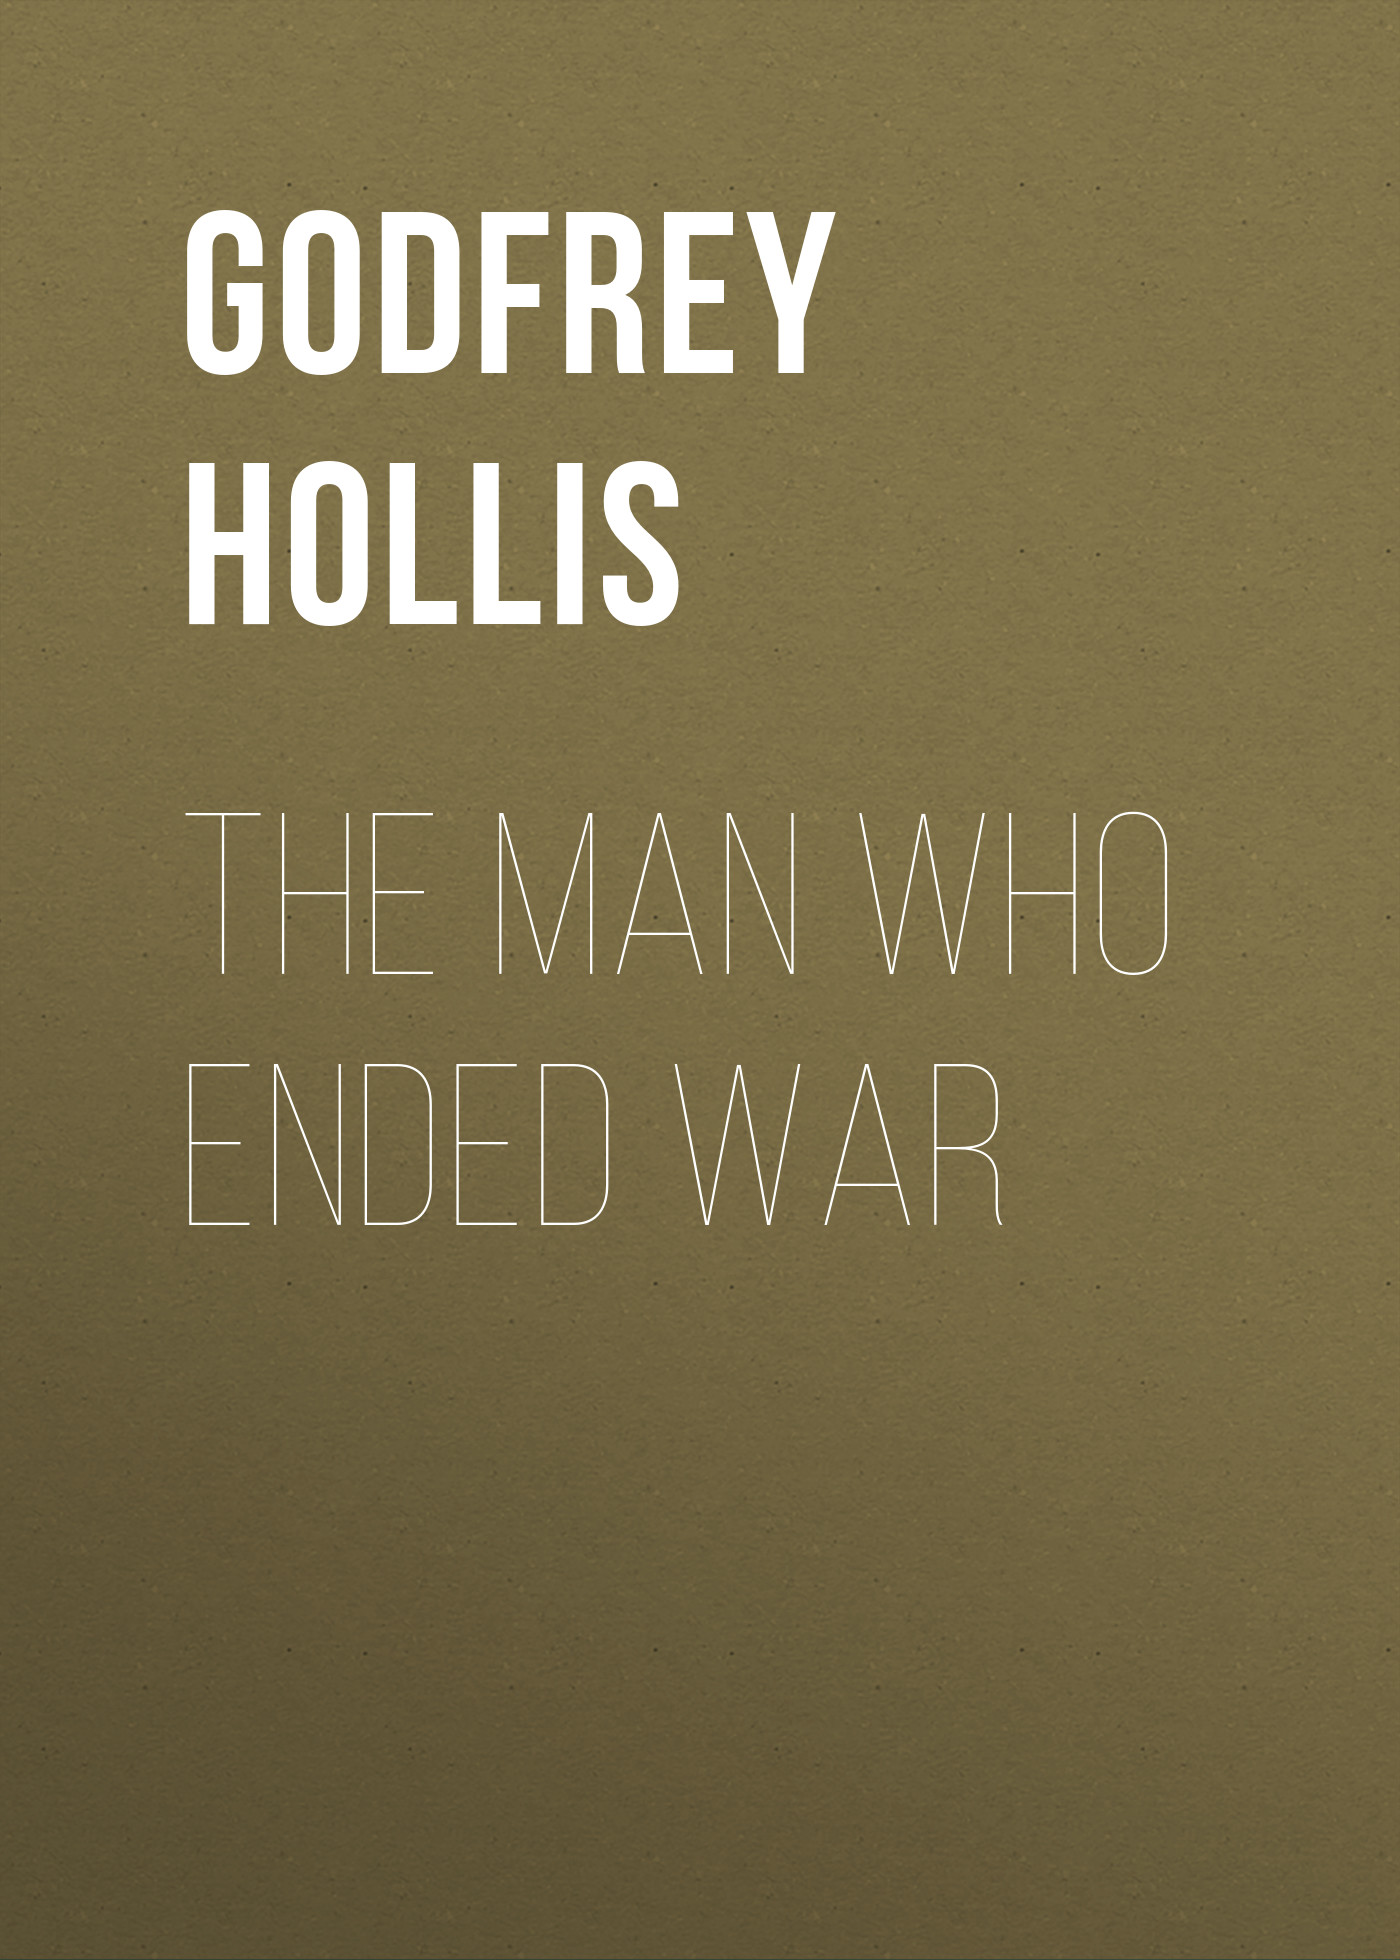 Godfrey Hollis The Man Who Ended War цена 2017